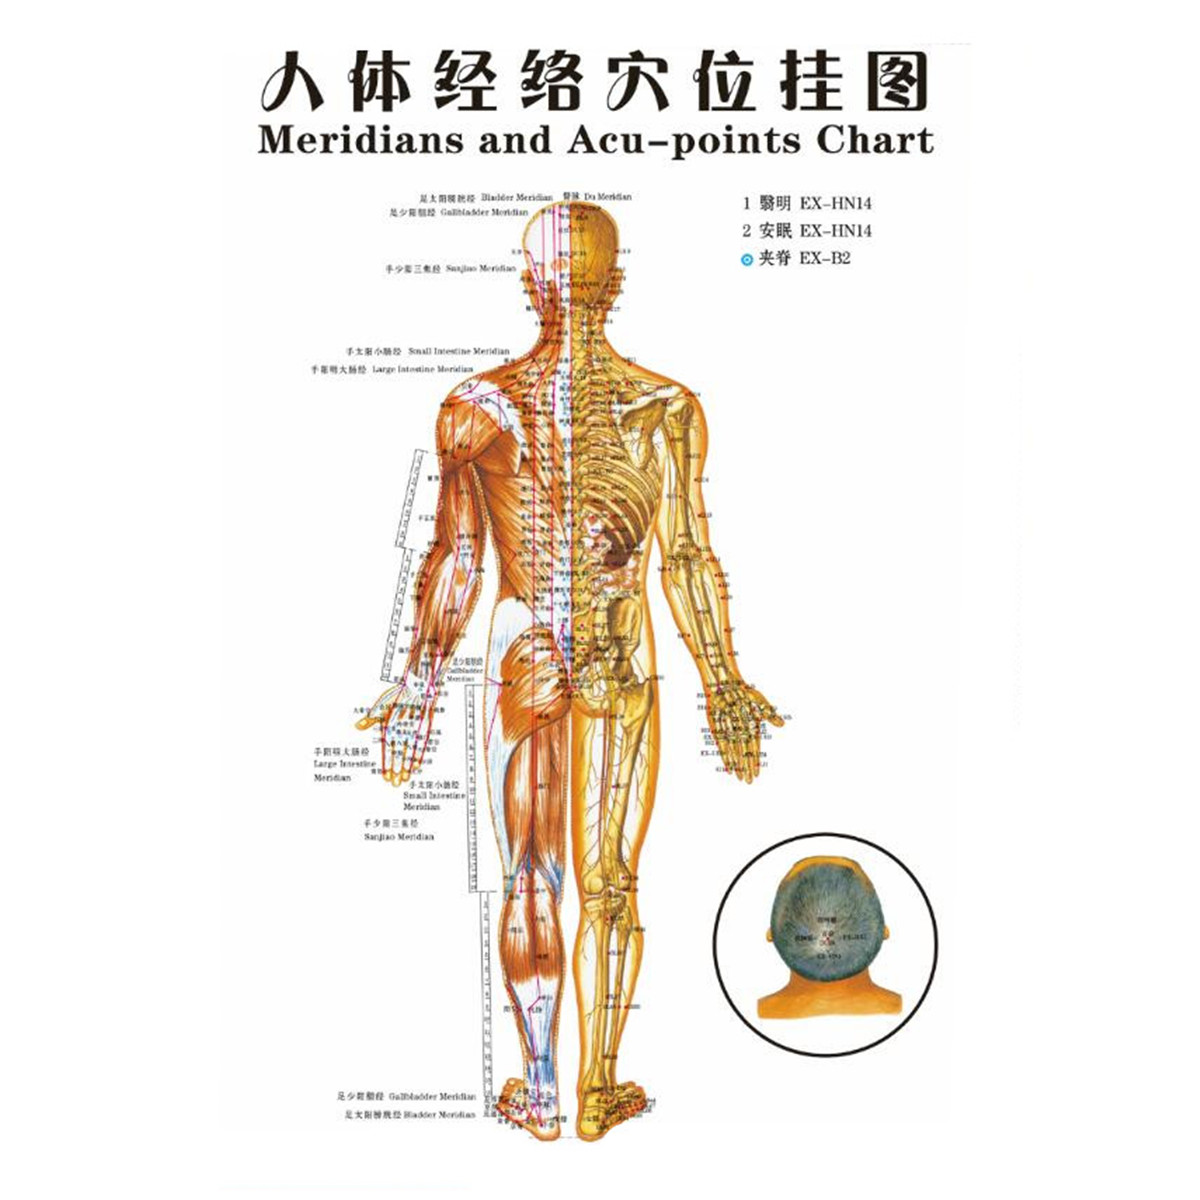 an analysis of acupuncture a chinese medicine In traditional chinese medicine, acupuncture is linked to the belief that disease is caused by disruptions to the flow of energy, or qi, in the body acupuncture stimulates points on or under the skin called acupuncture points or acupressure points, releasing this qi.